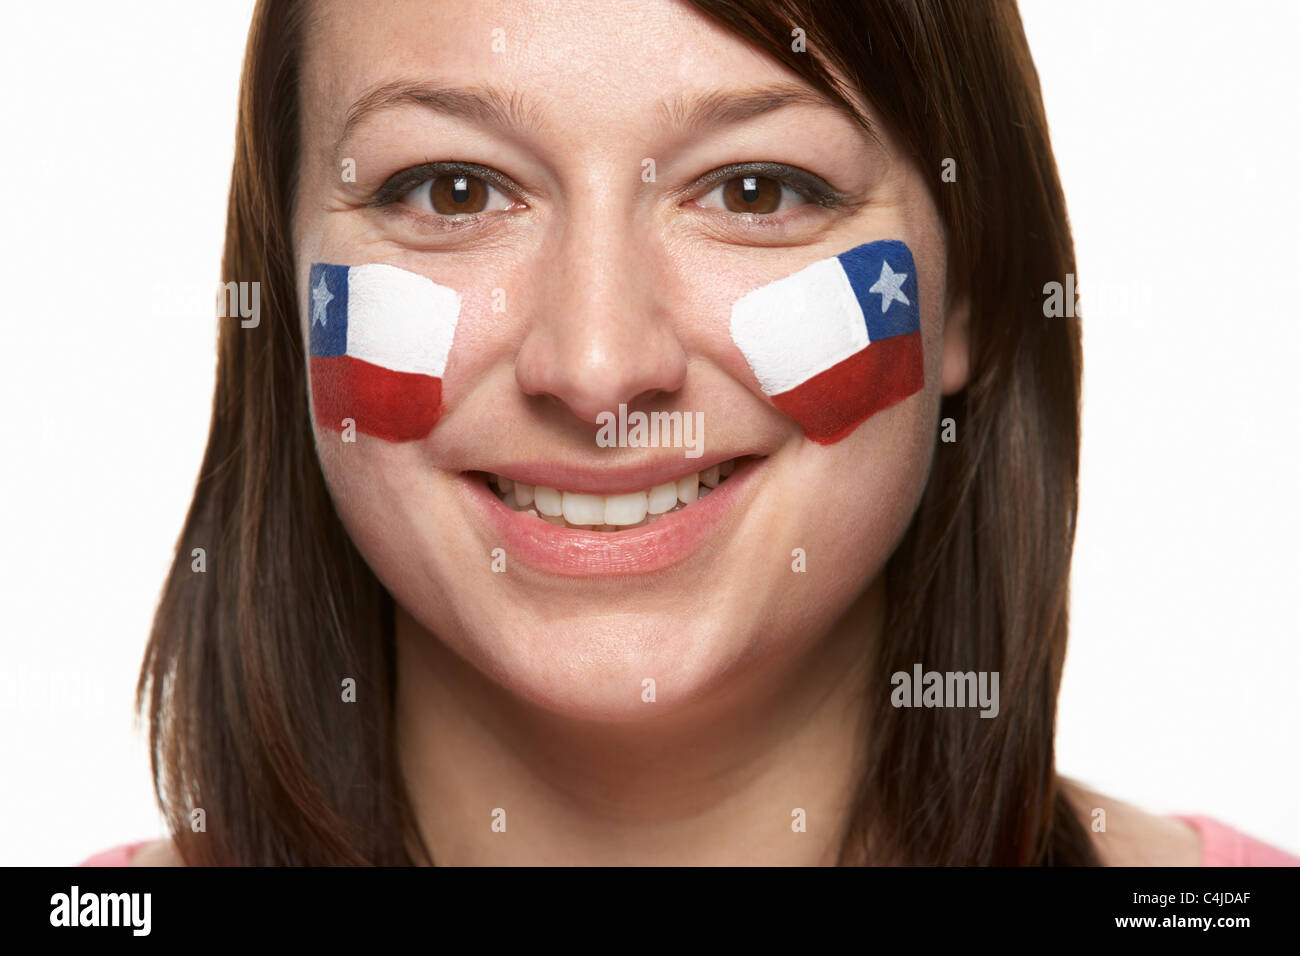 Young Female Sports Fan With Chilean Flag Painted On Face - Stock Image